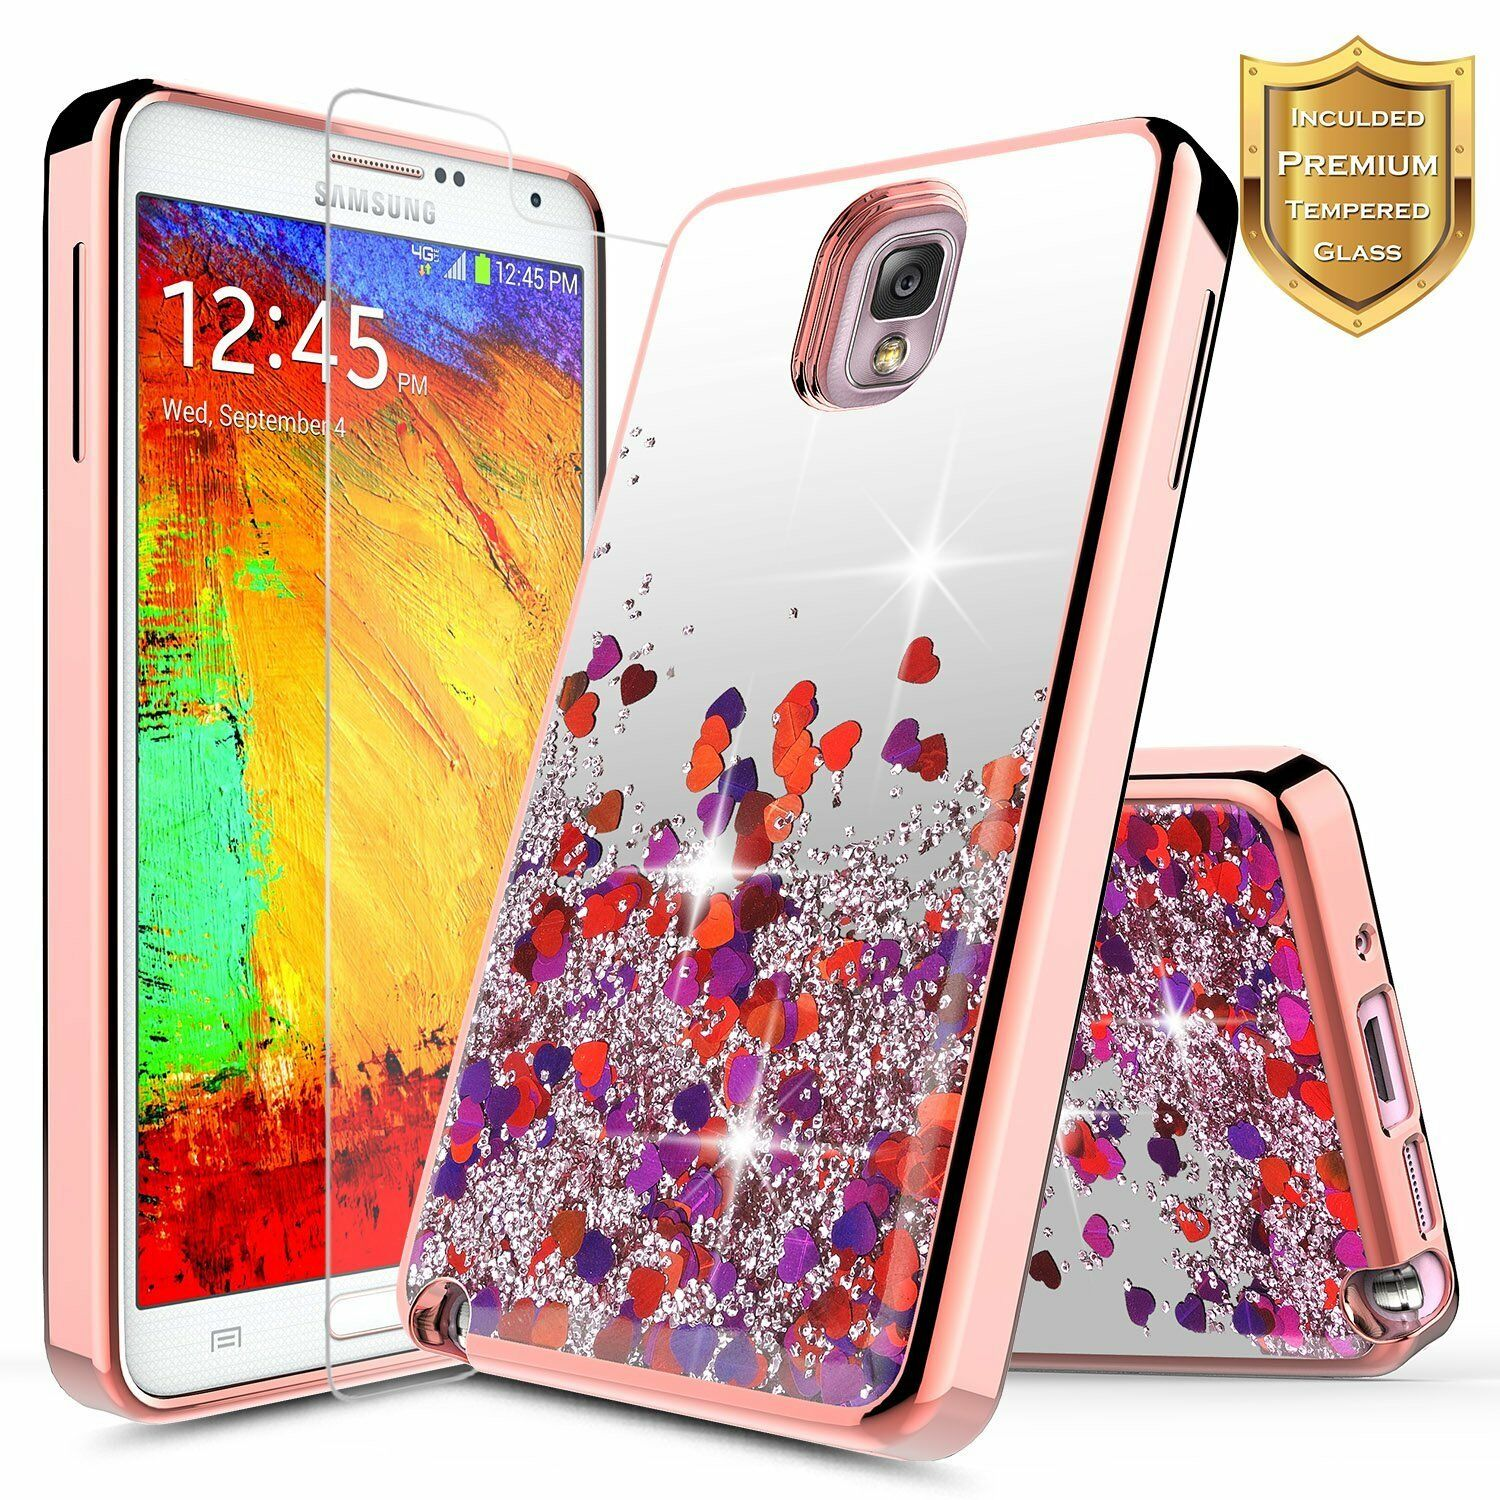 For Samsung Galaxy Note 3 Liquid Glitter Bling TPU Case Cover + Tempered Glass